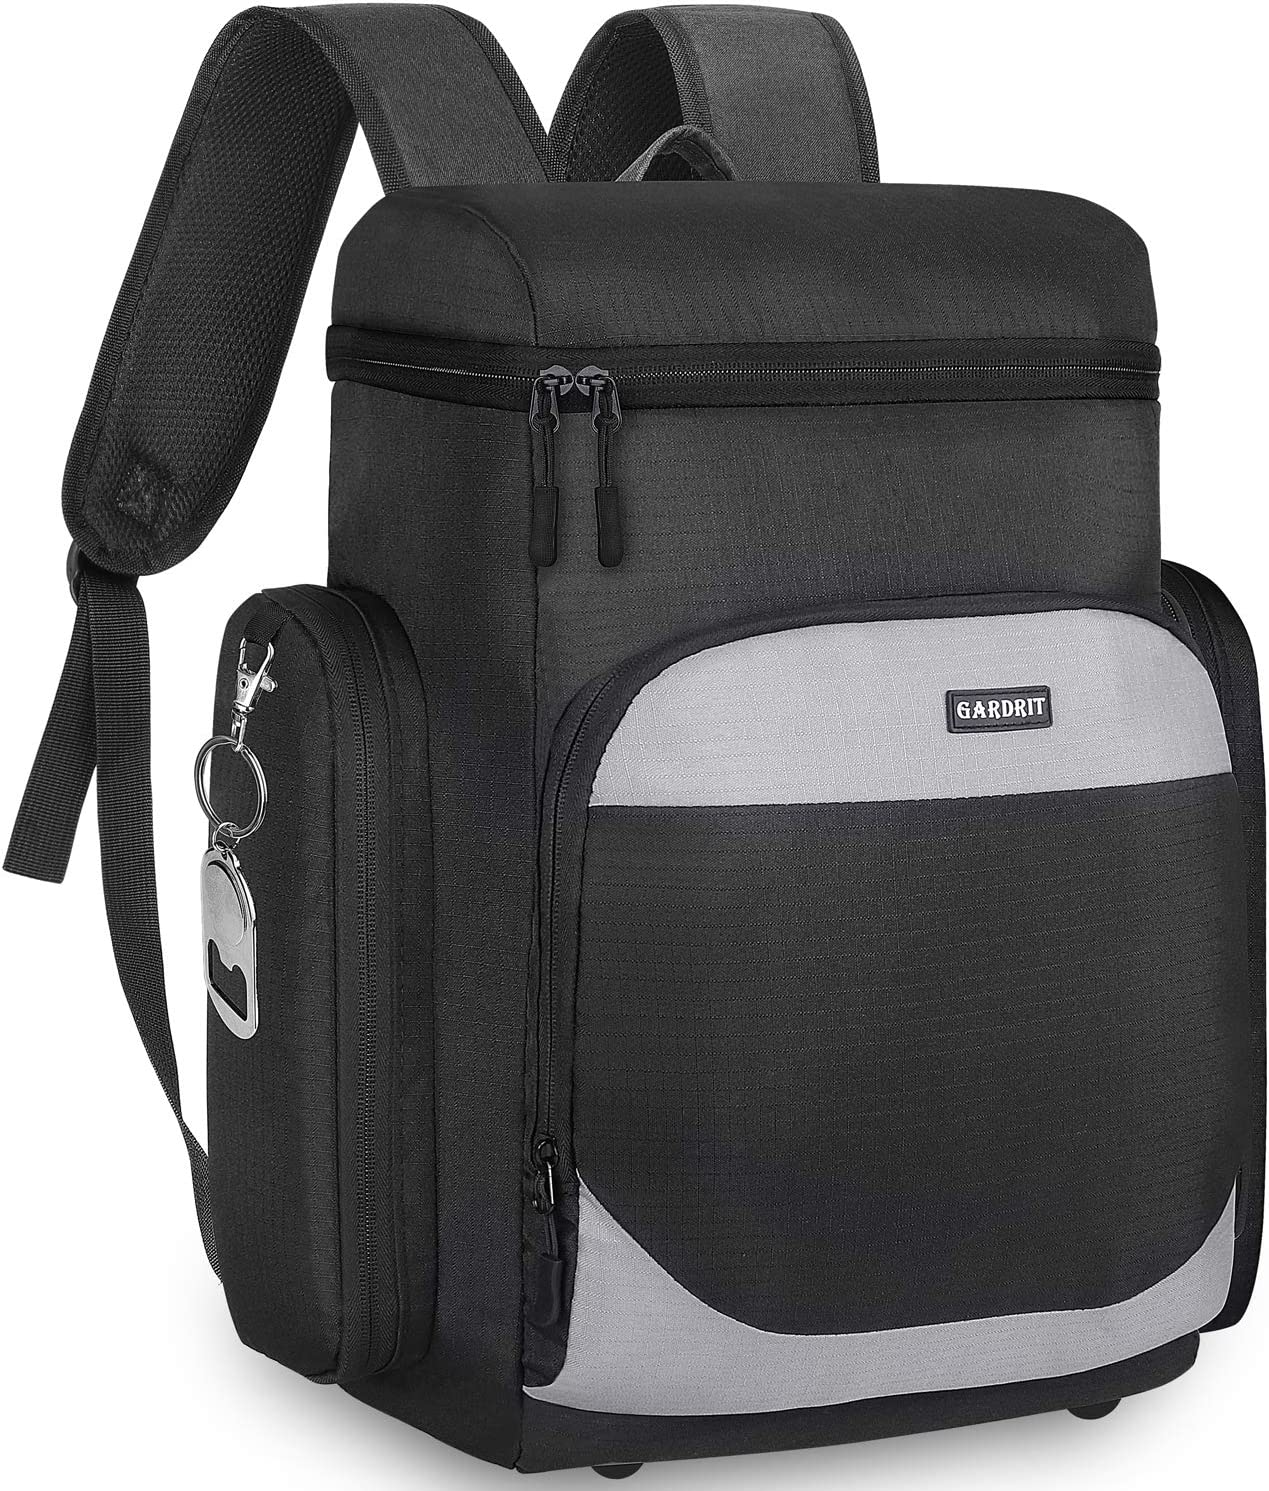 GARDRIT Insulated Cooler Backpack - Multi-Pocket Leakproof Spacious Lightweight Soft Cooler Bag Backpack Cooler for Men/Women to Work Beach Picnic Travel Trips (35 Cans)